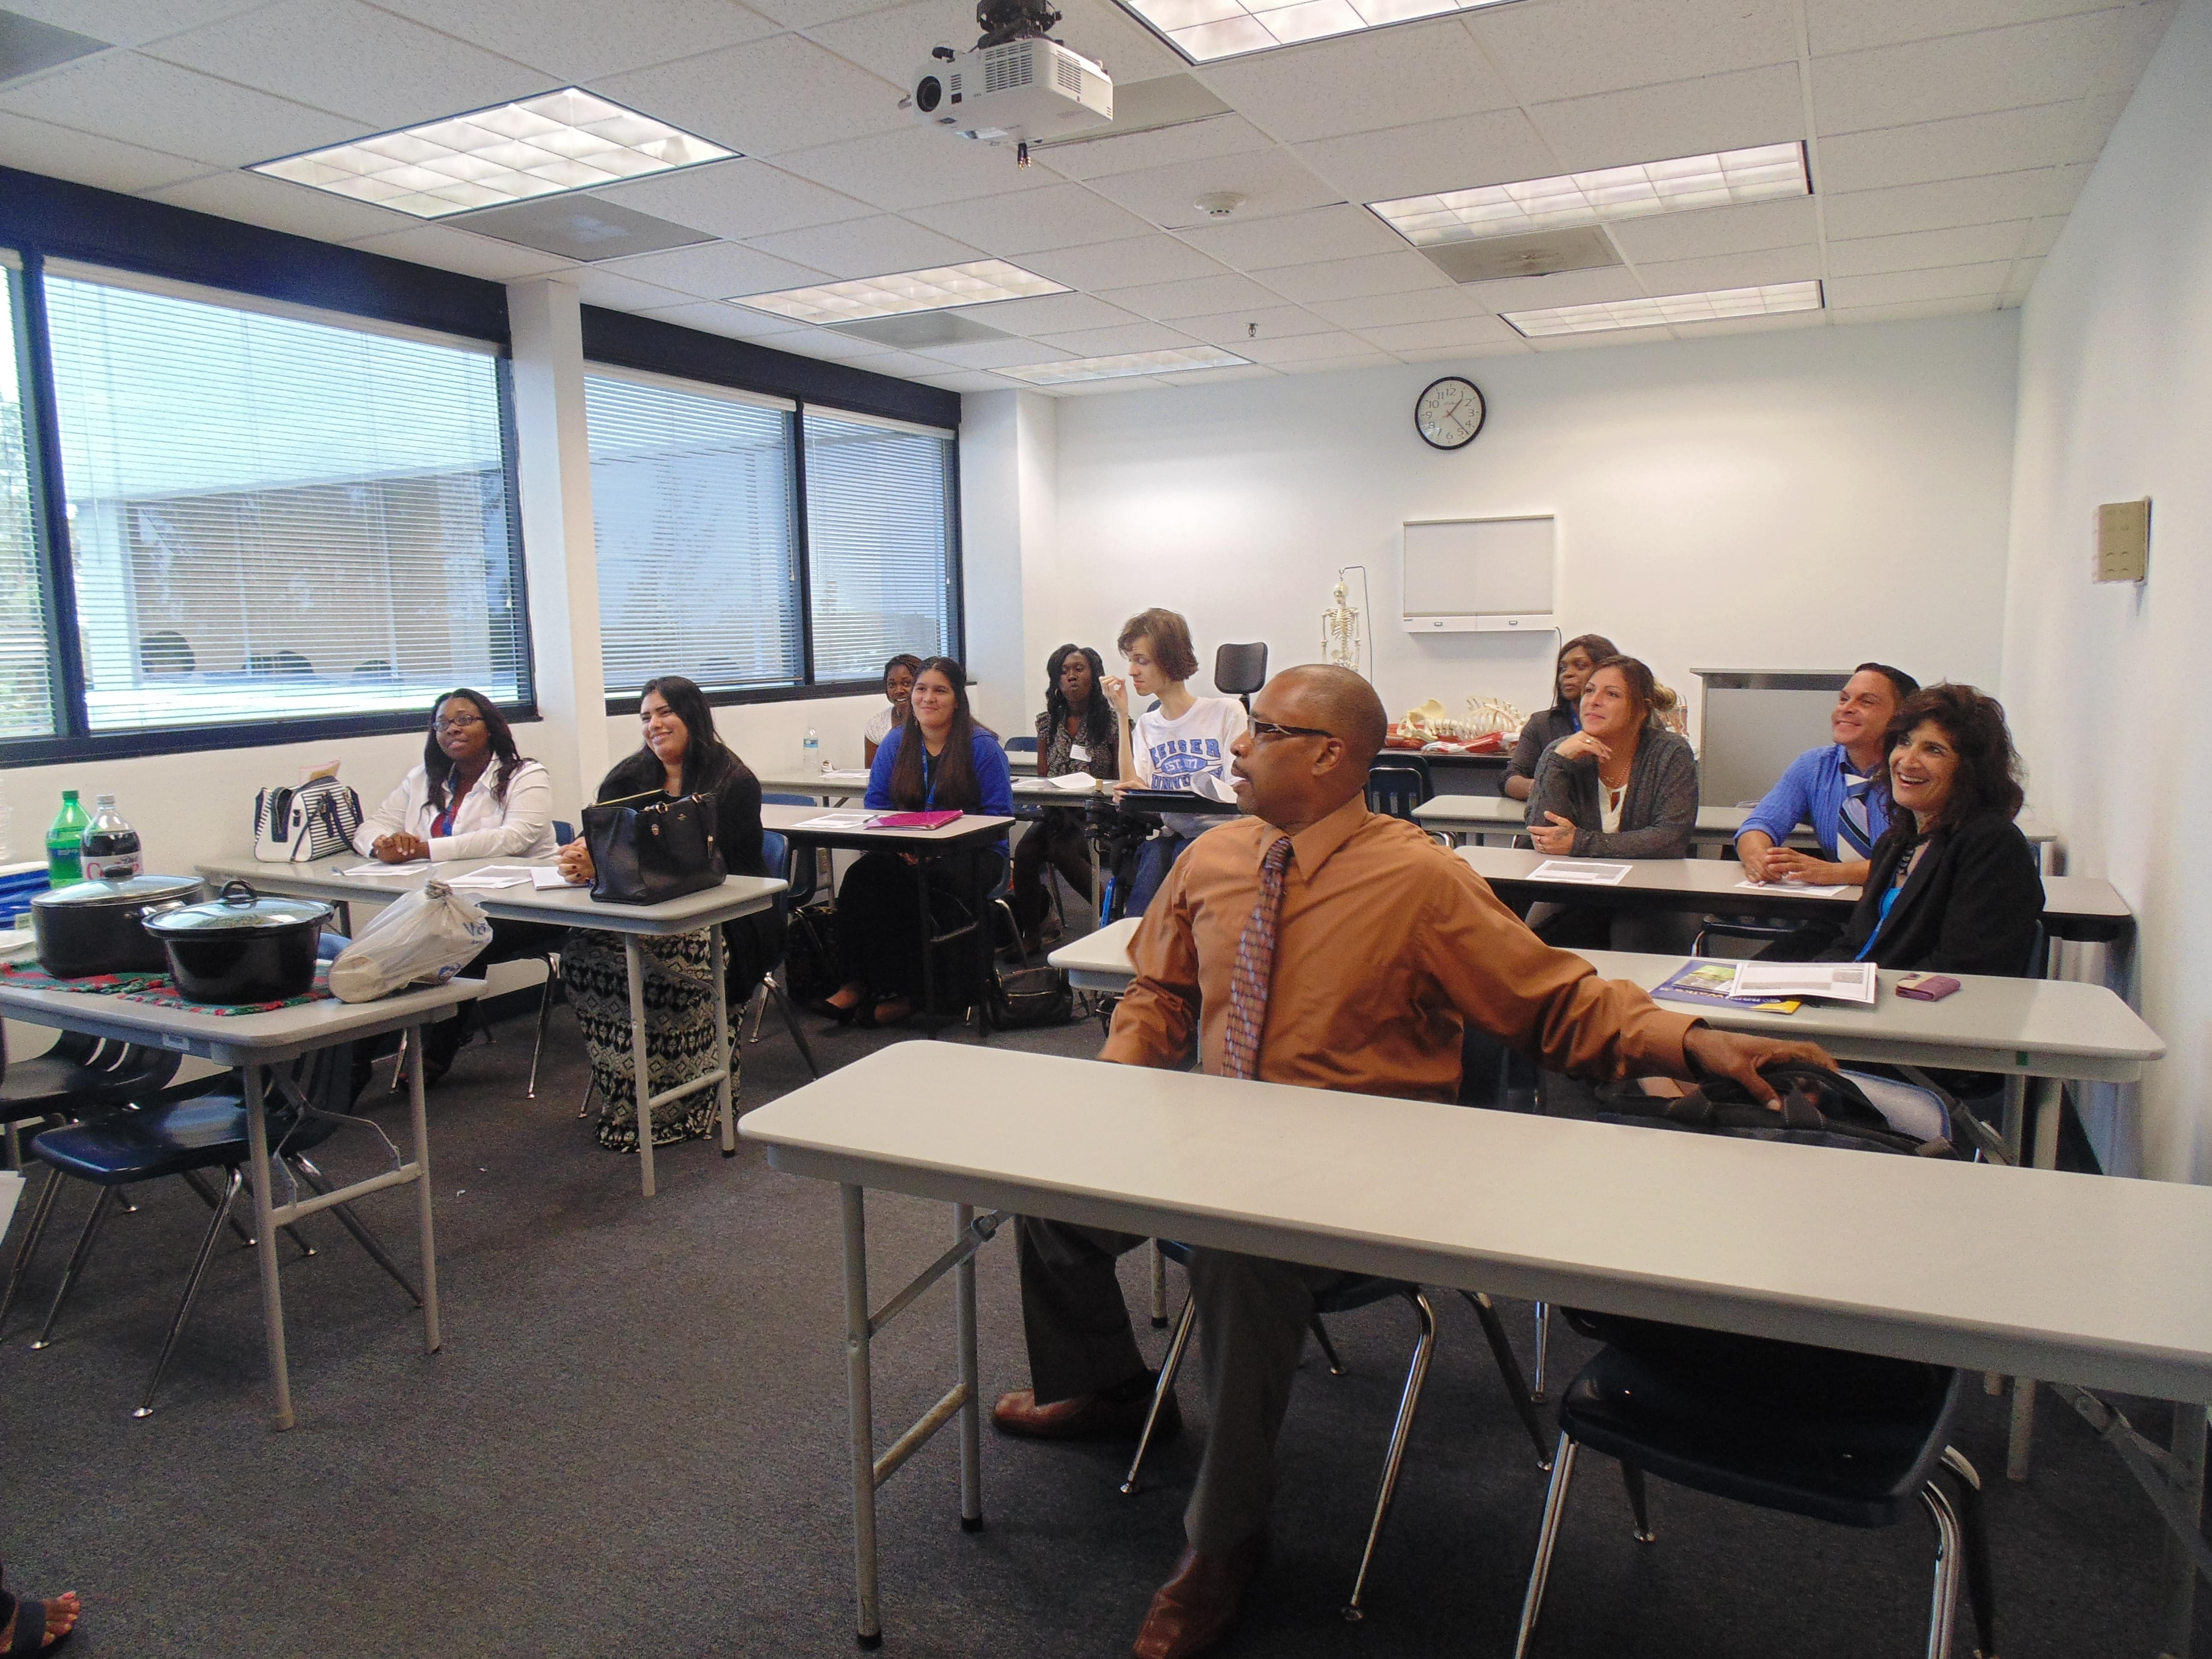 The Ft. Lauderdale Campus Hosts Their First Psychology Club Meeting